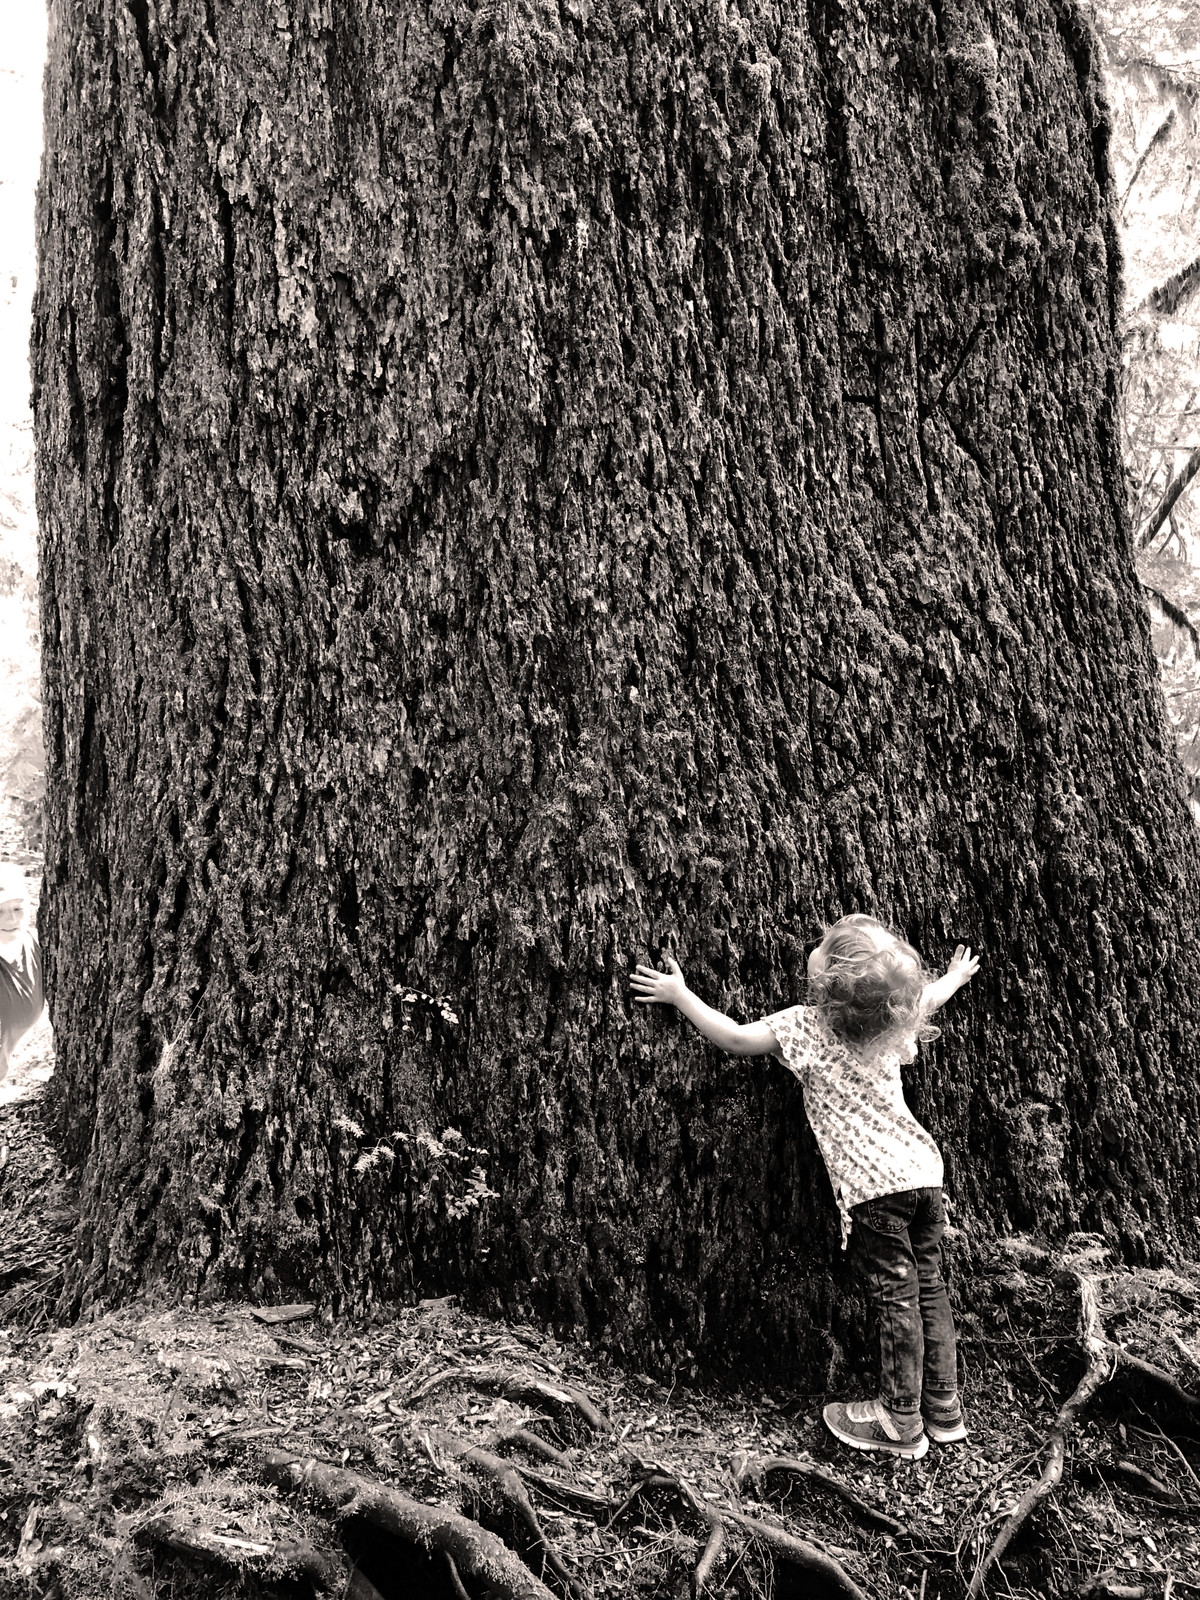 A child hugs a tree in the Valley of the Giants.